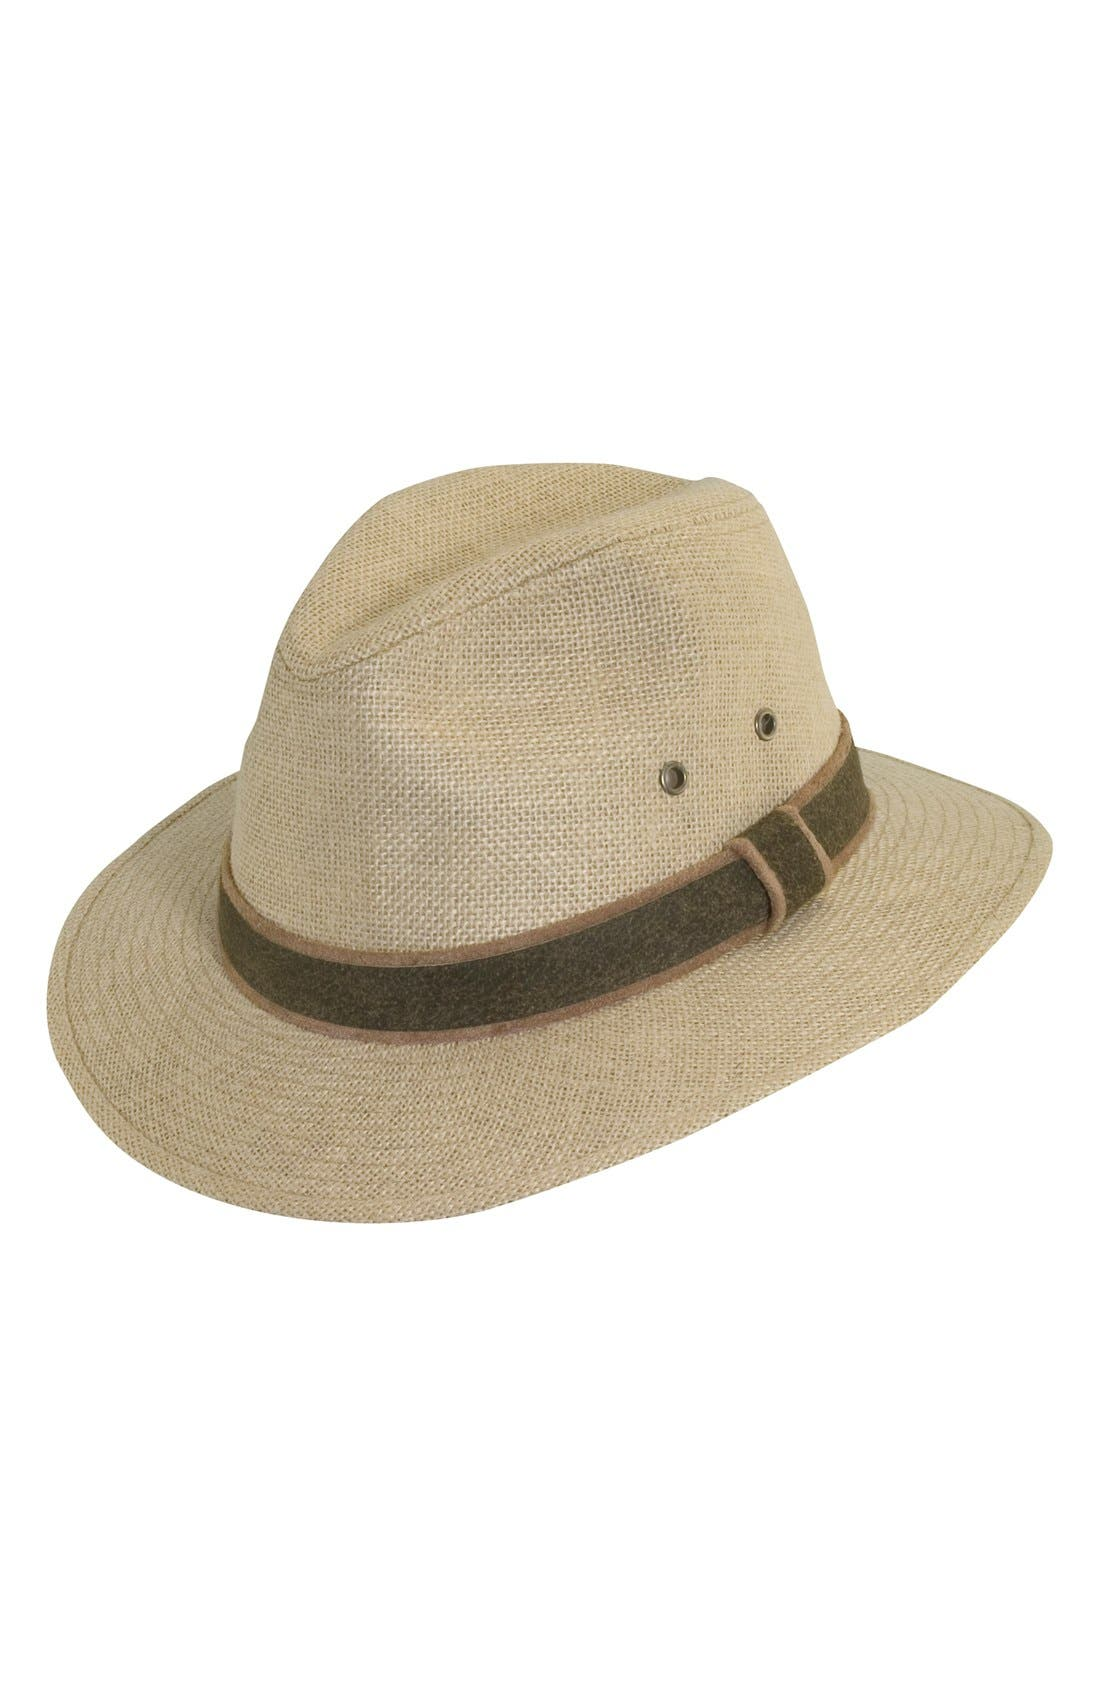 SCALA Hemp Safari Hat